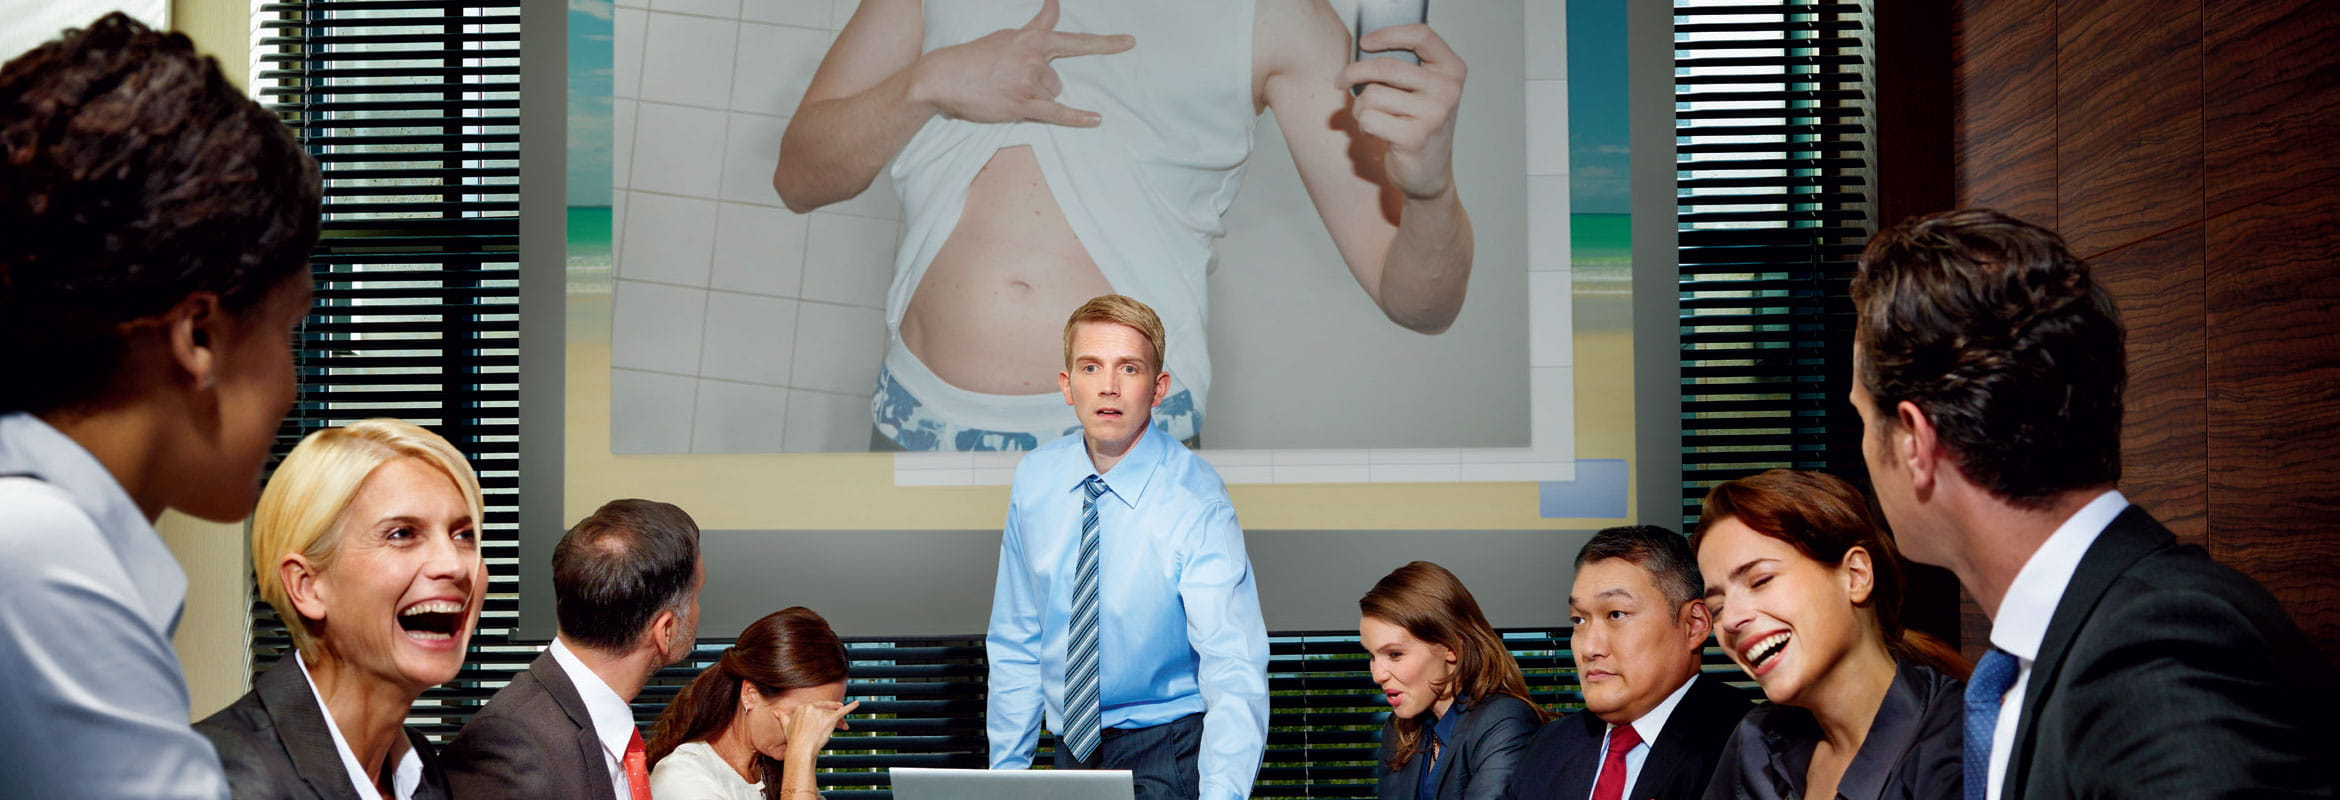 People laughing at office presentation